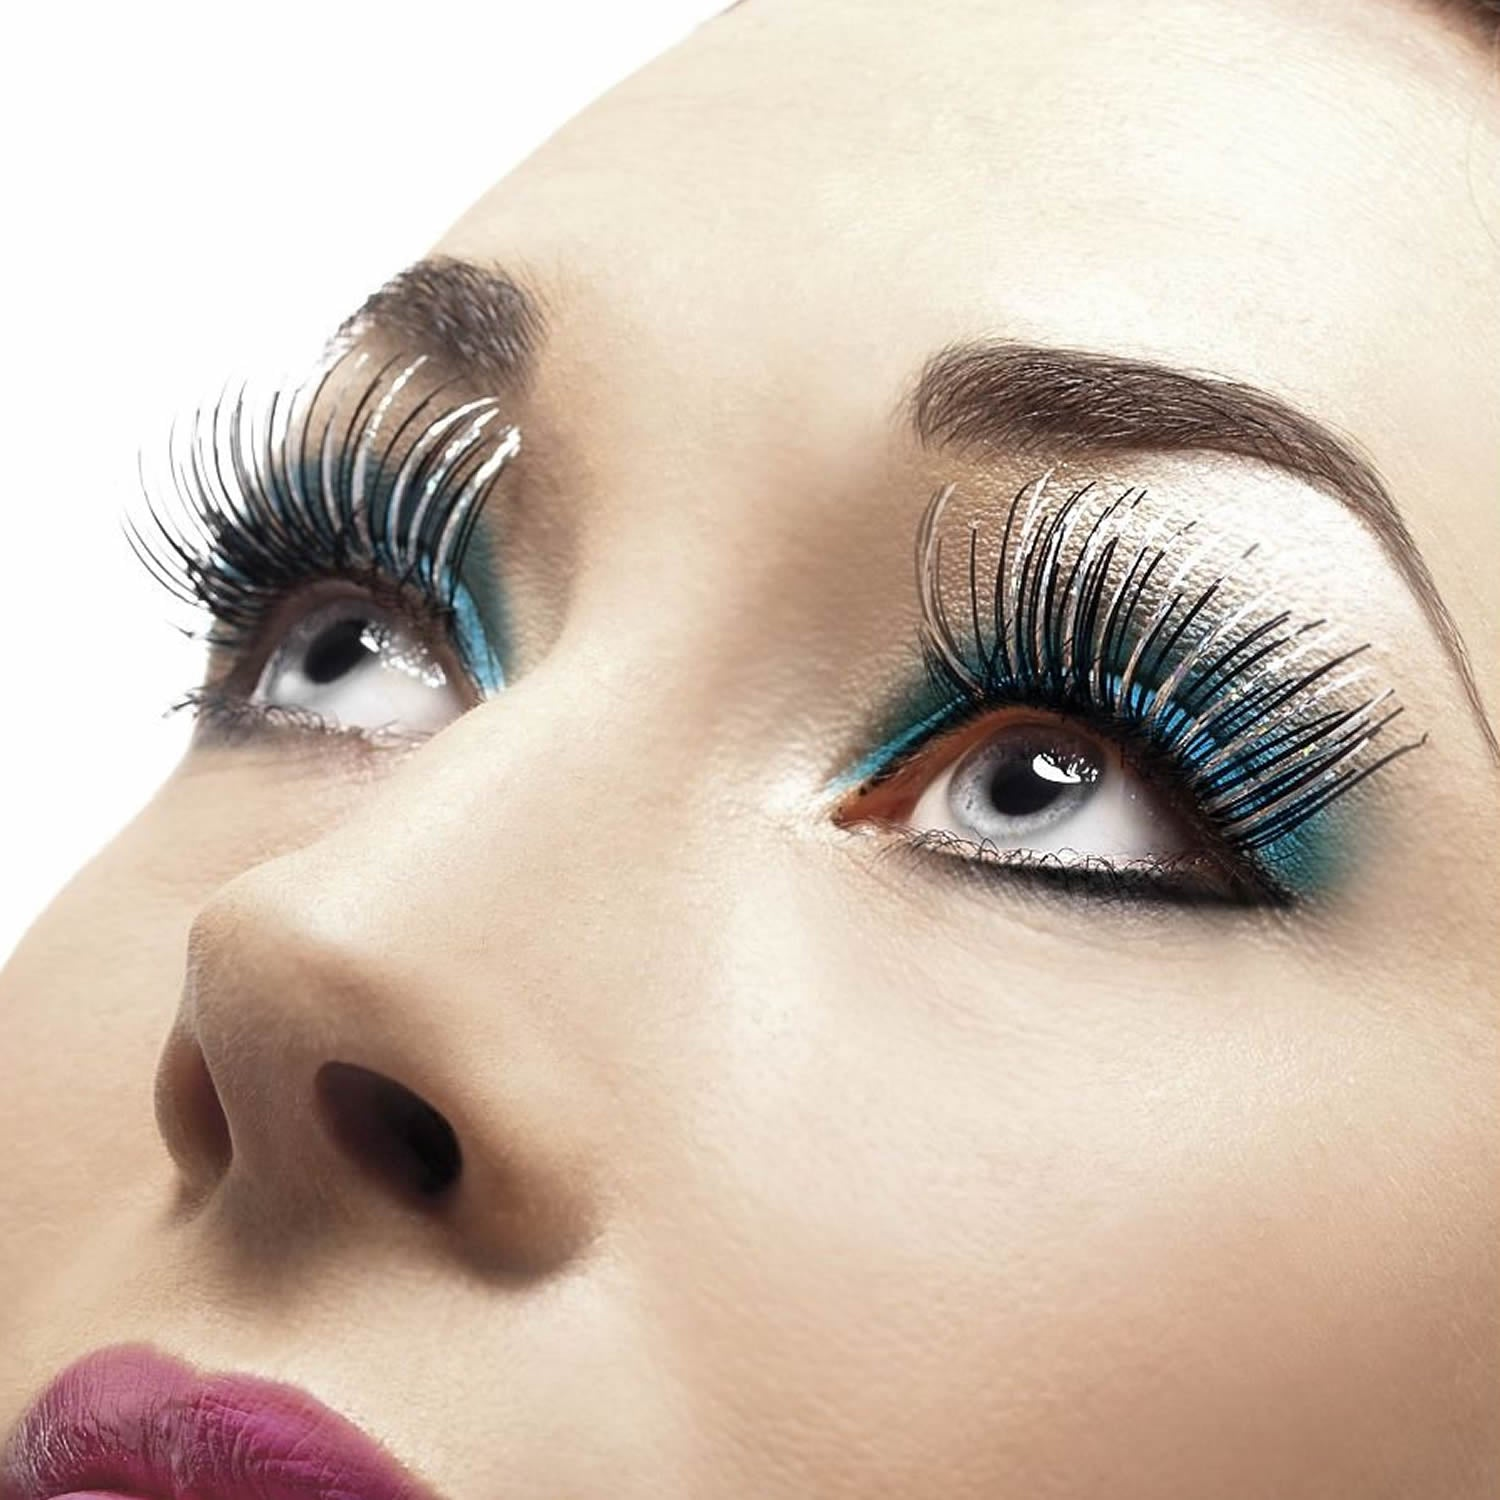 c0a78b29009 Fever False Eyelashes - Silver Holographic - Red Carpet FX - Professional  Makeup